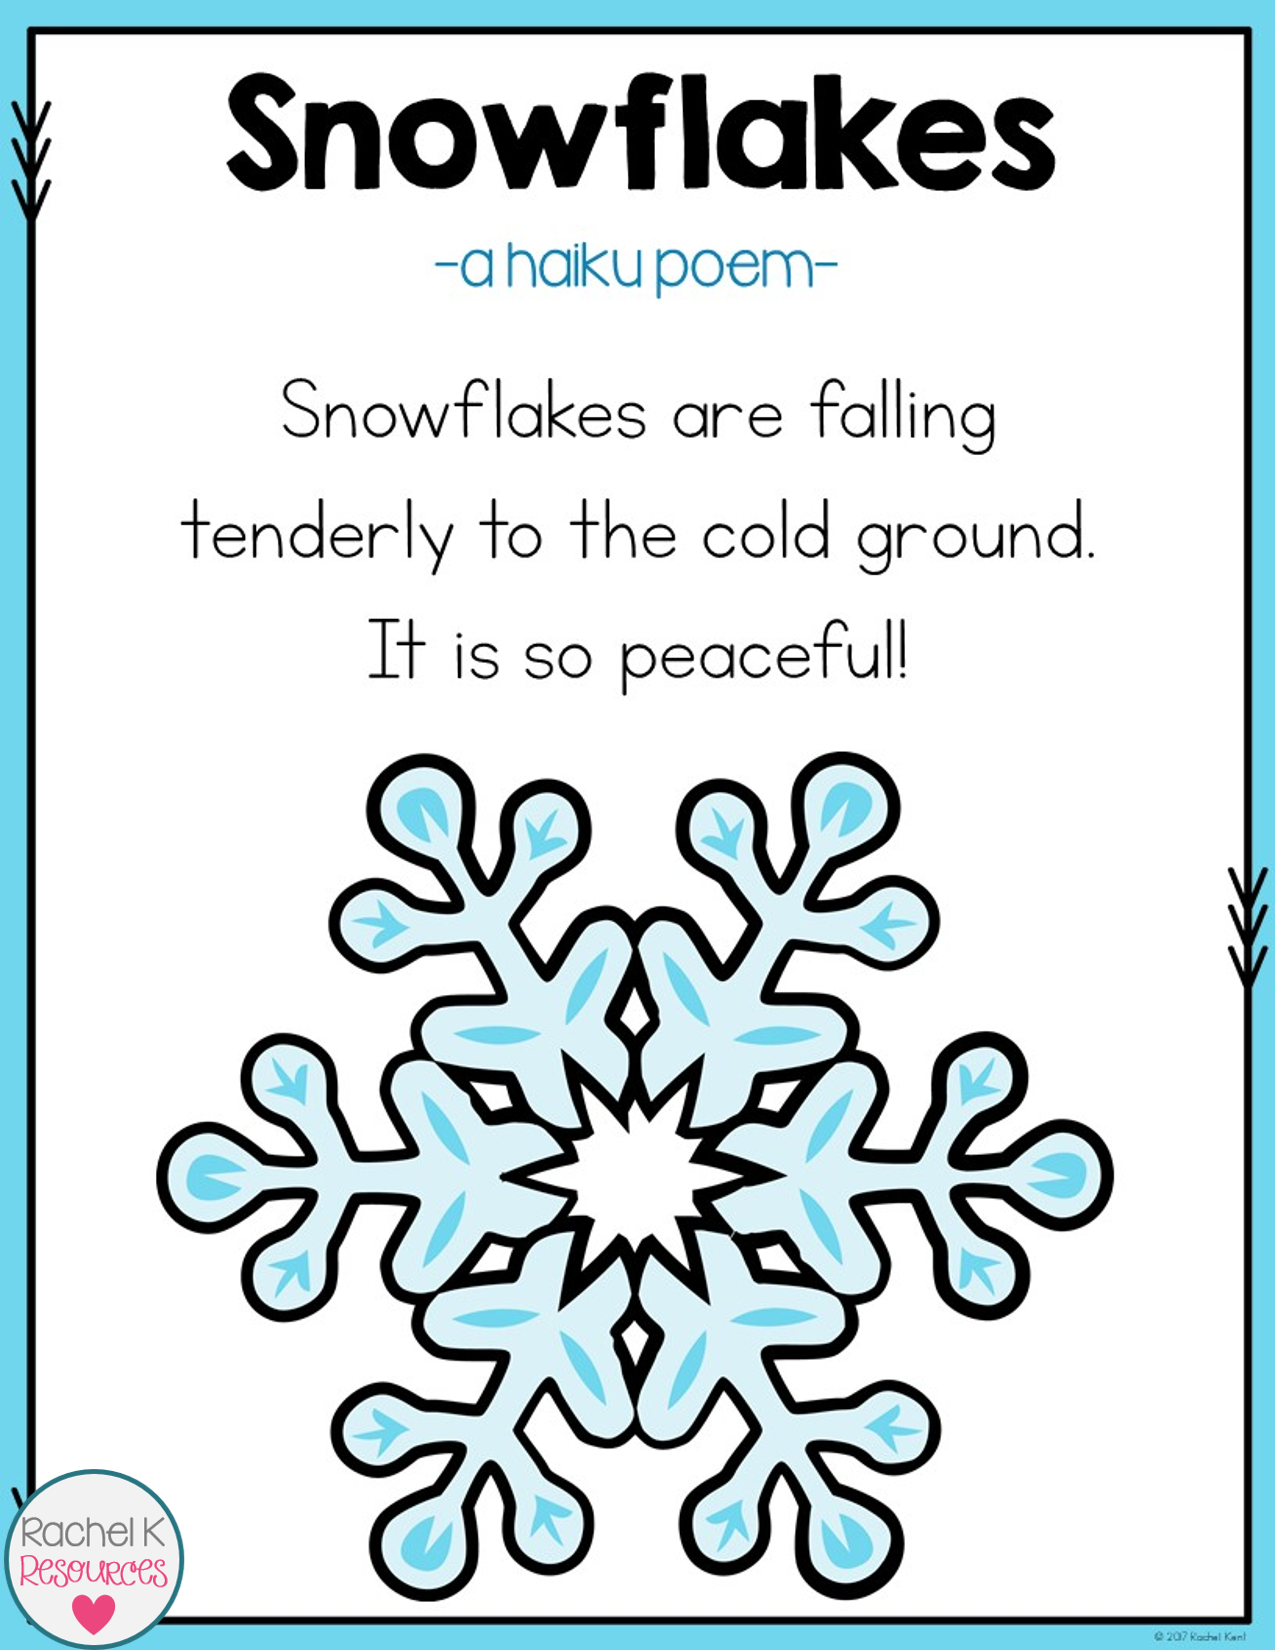 Students Can Practice Their Fluency While Reading These Winter Poems There Are 25 Original Poems Including Acrostic Ha Winter Poetry Haiku Poems Winter Poems [ 1650 x 1275 Pixel ]